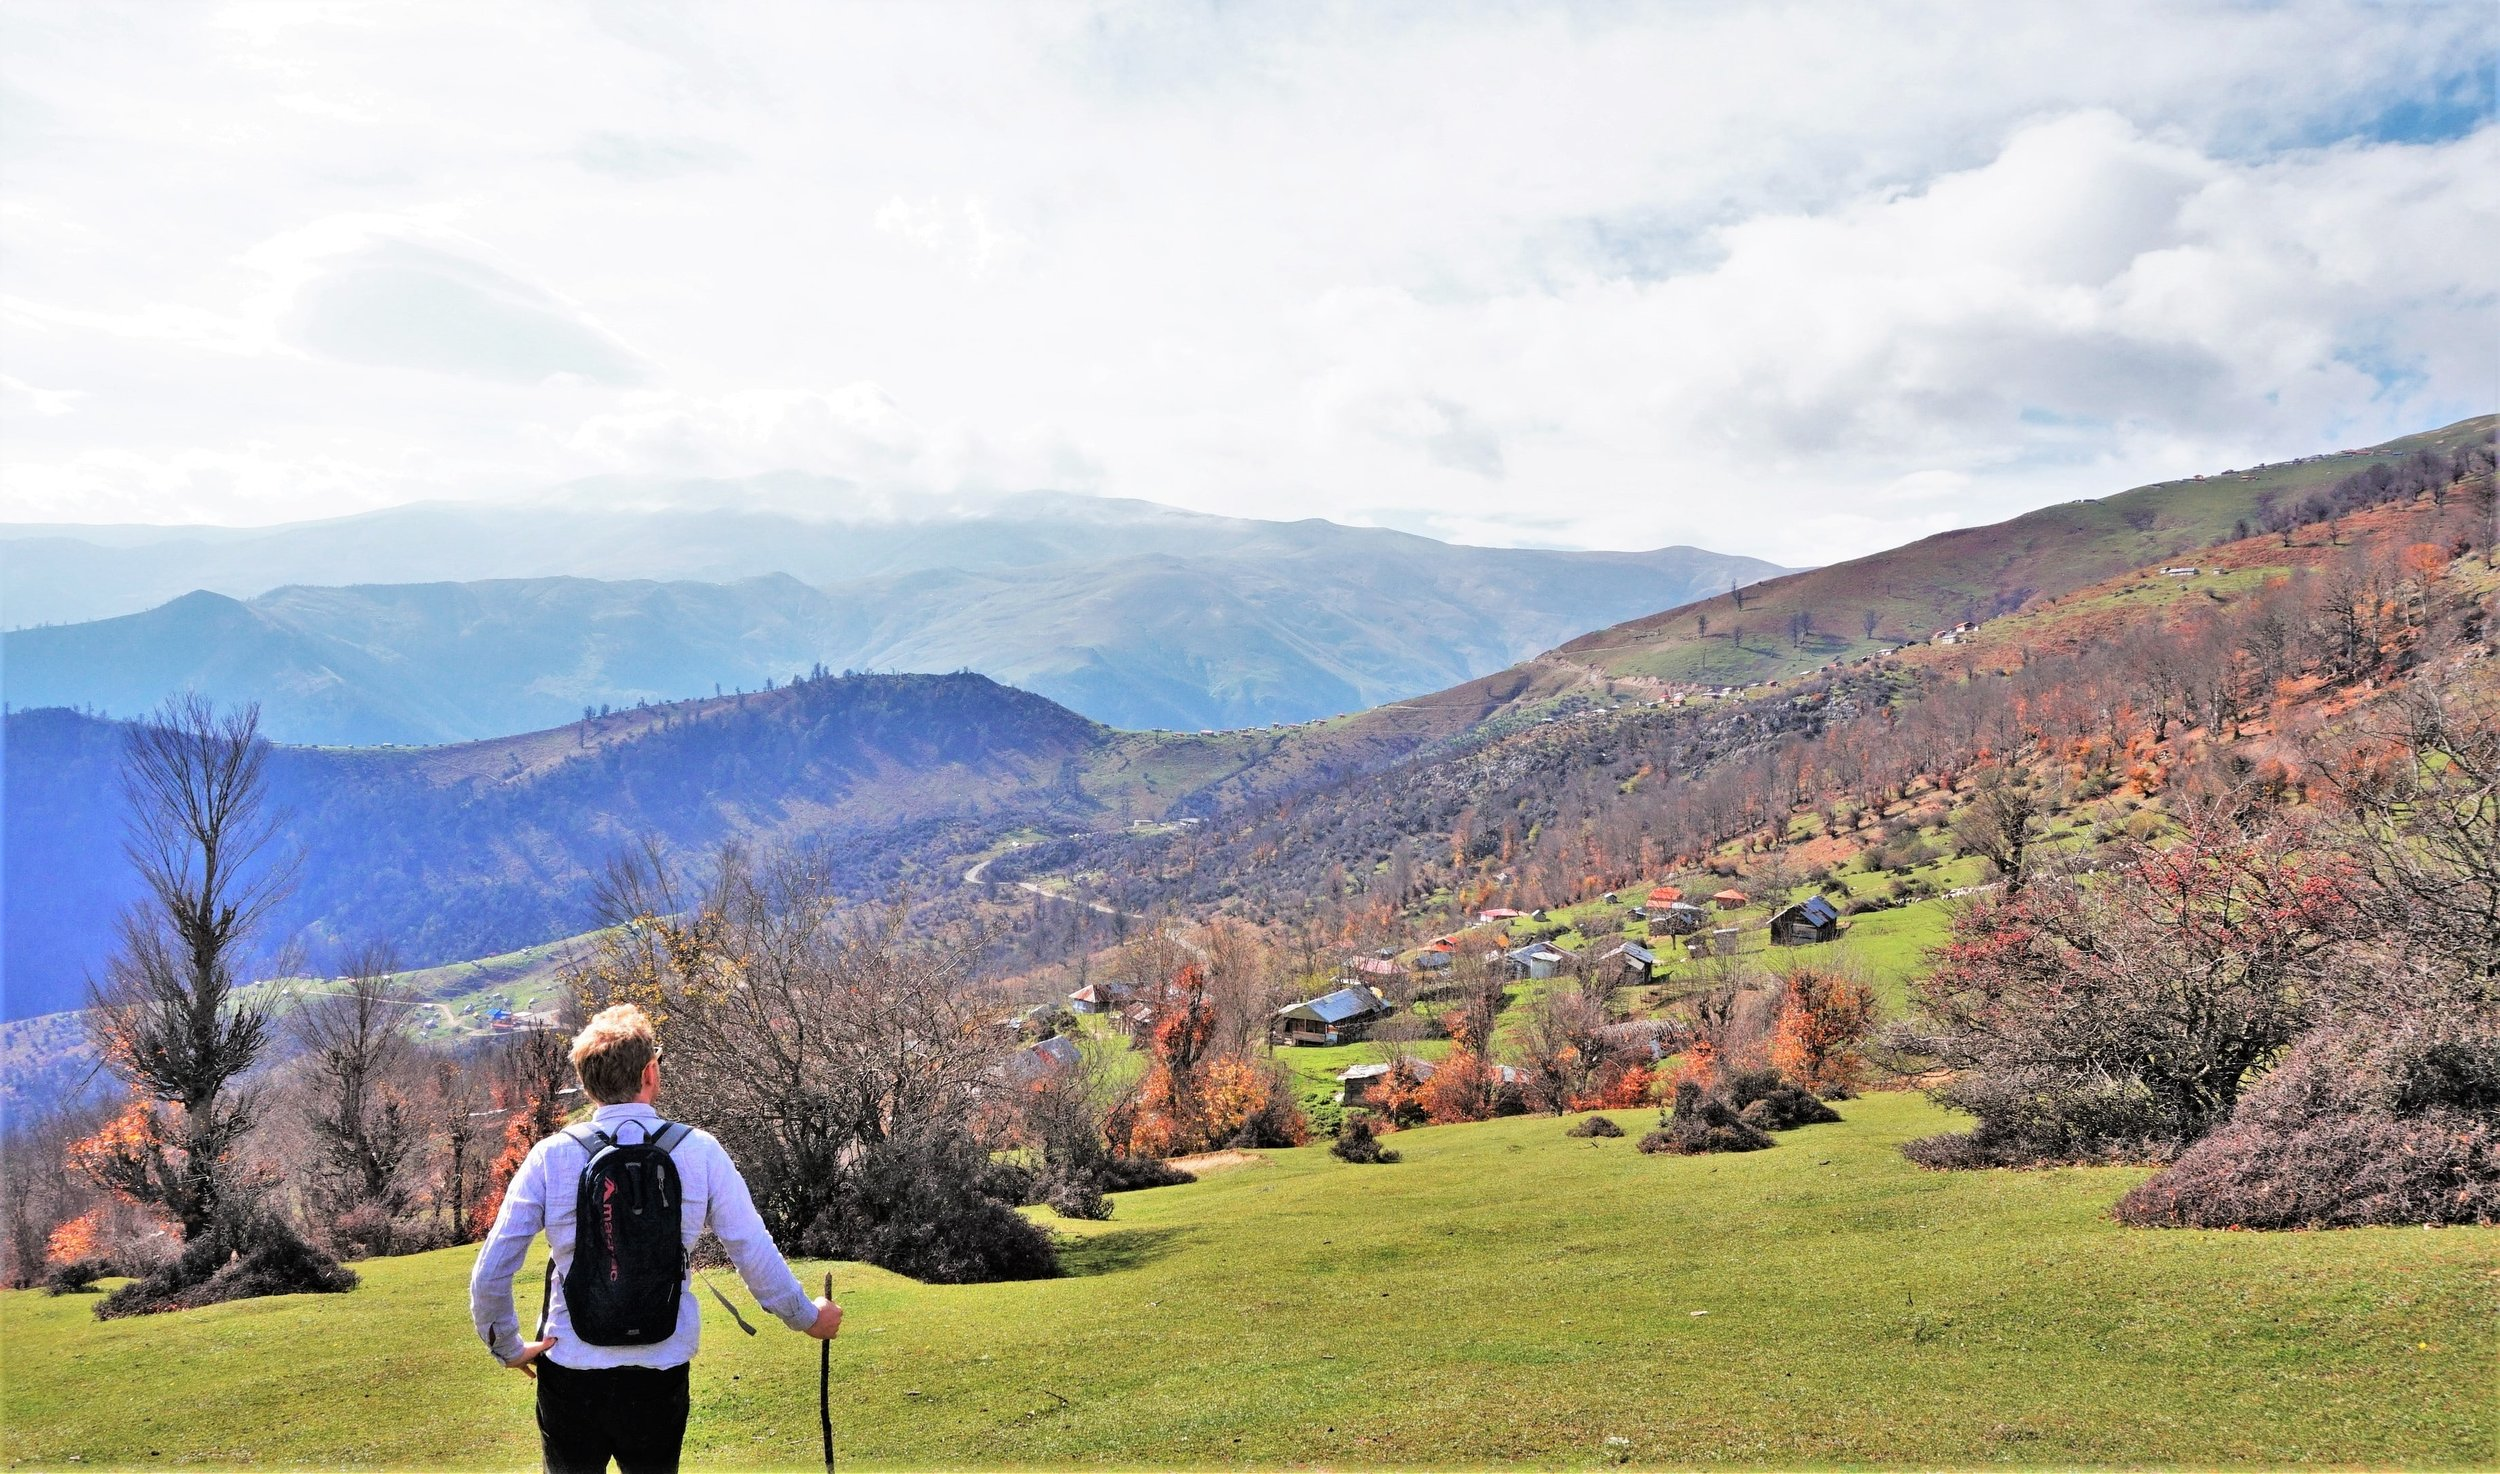 hiking in the north of iran rasht-min.jpg